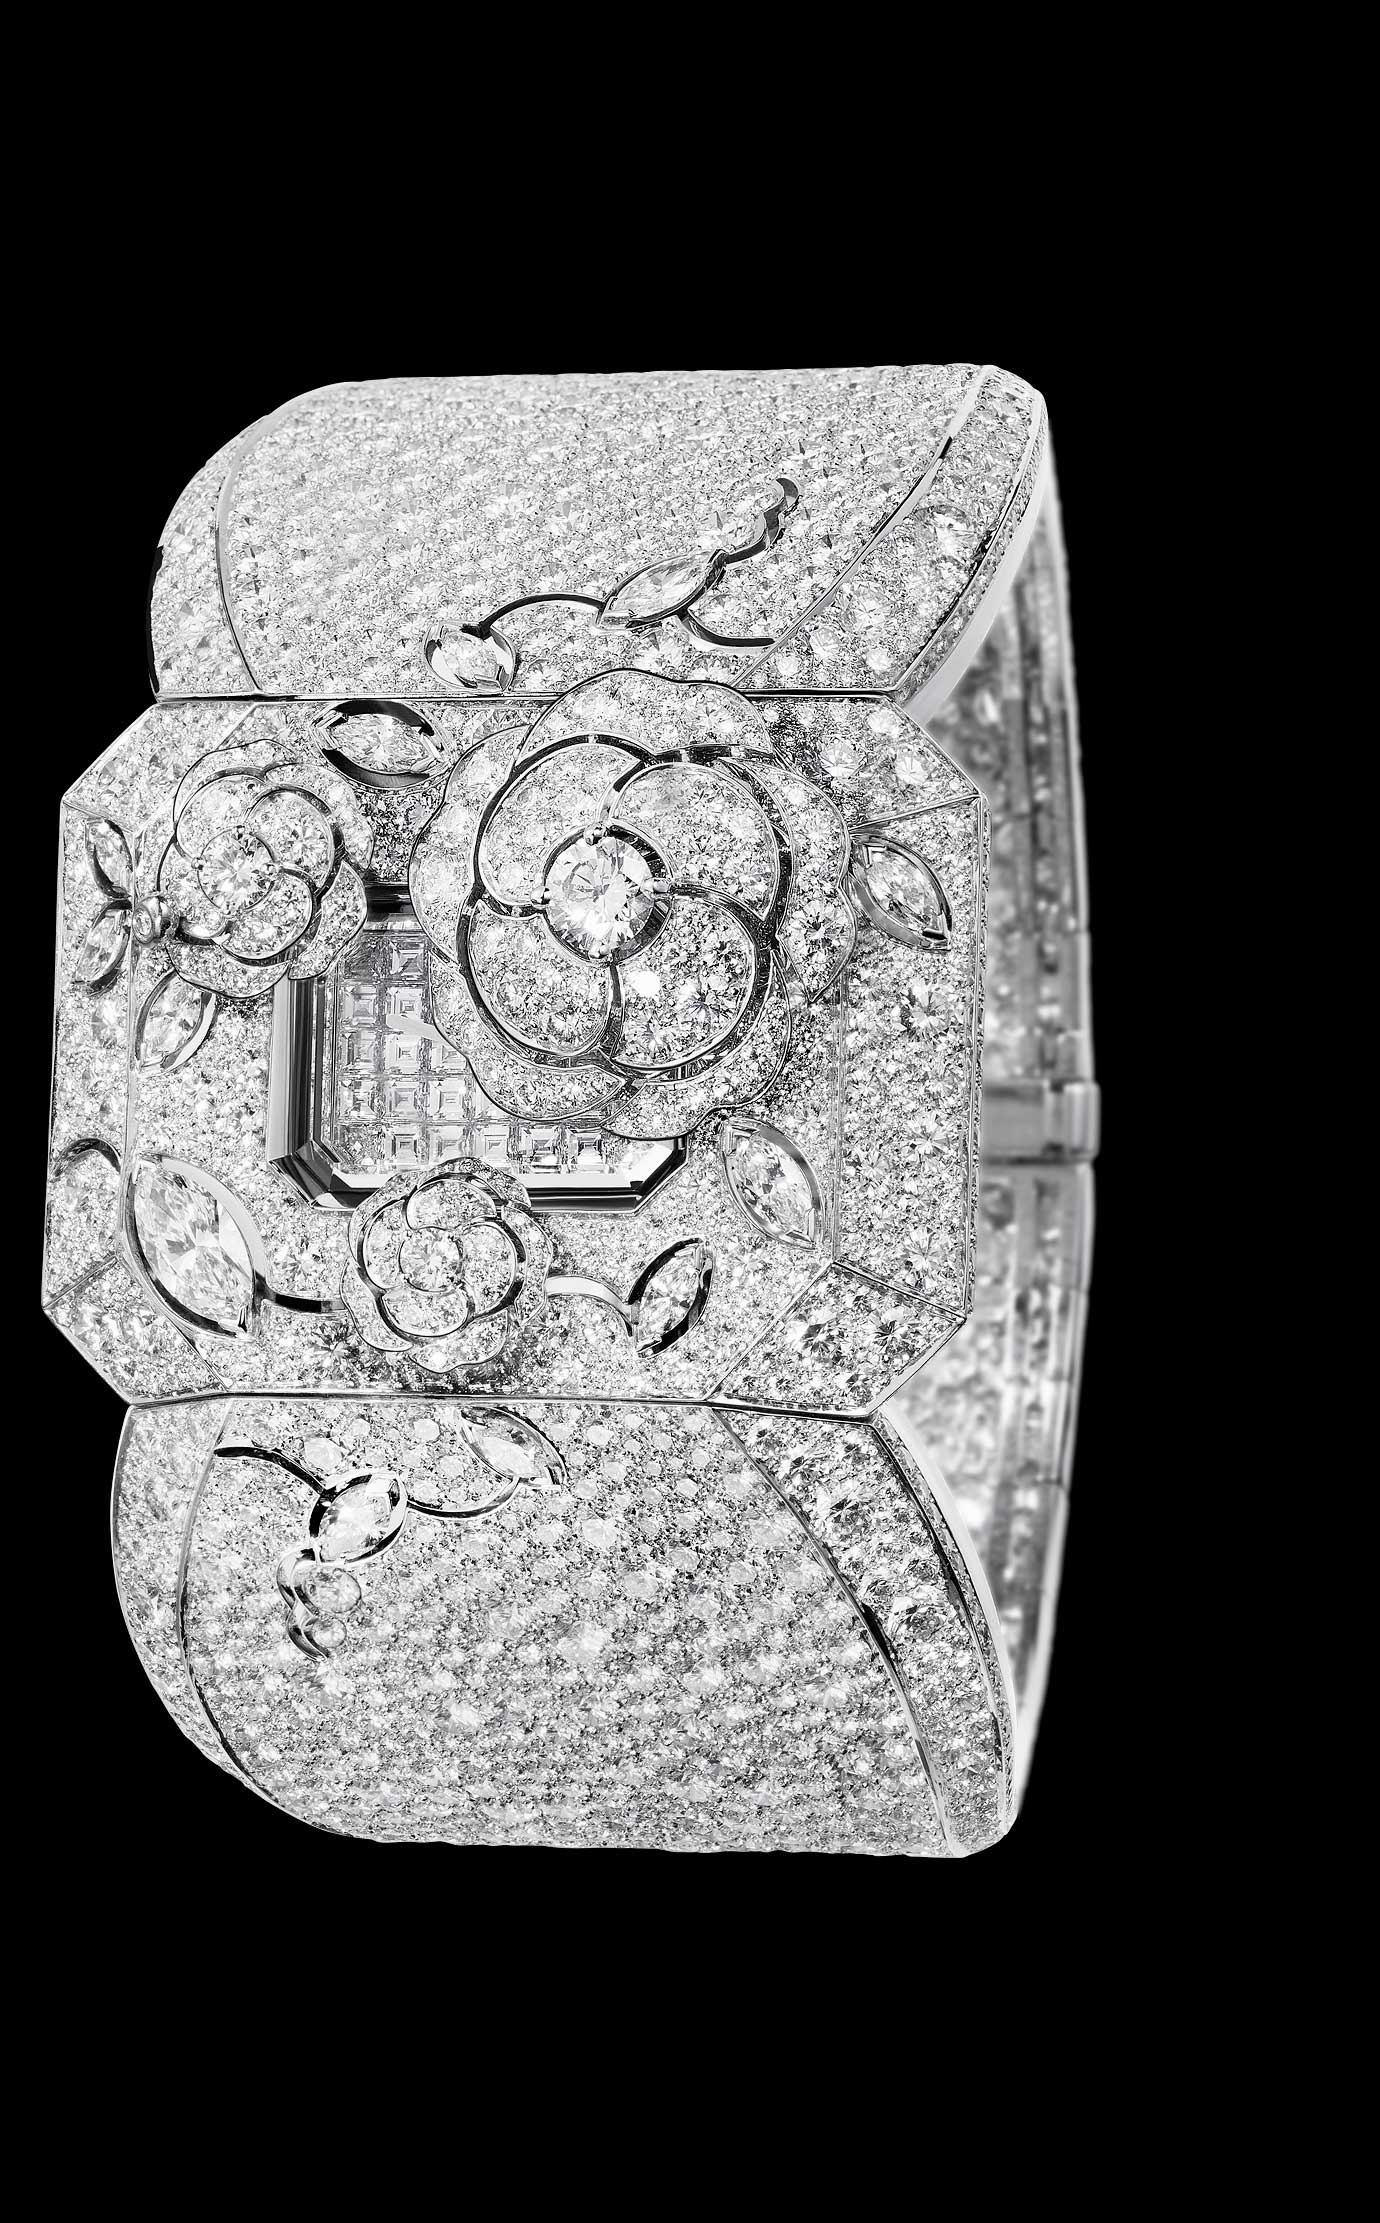 Les Eternelles de CHANEL. Watch in 18K white gold and diamonds. High-precision quartz movement. - Closed